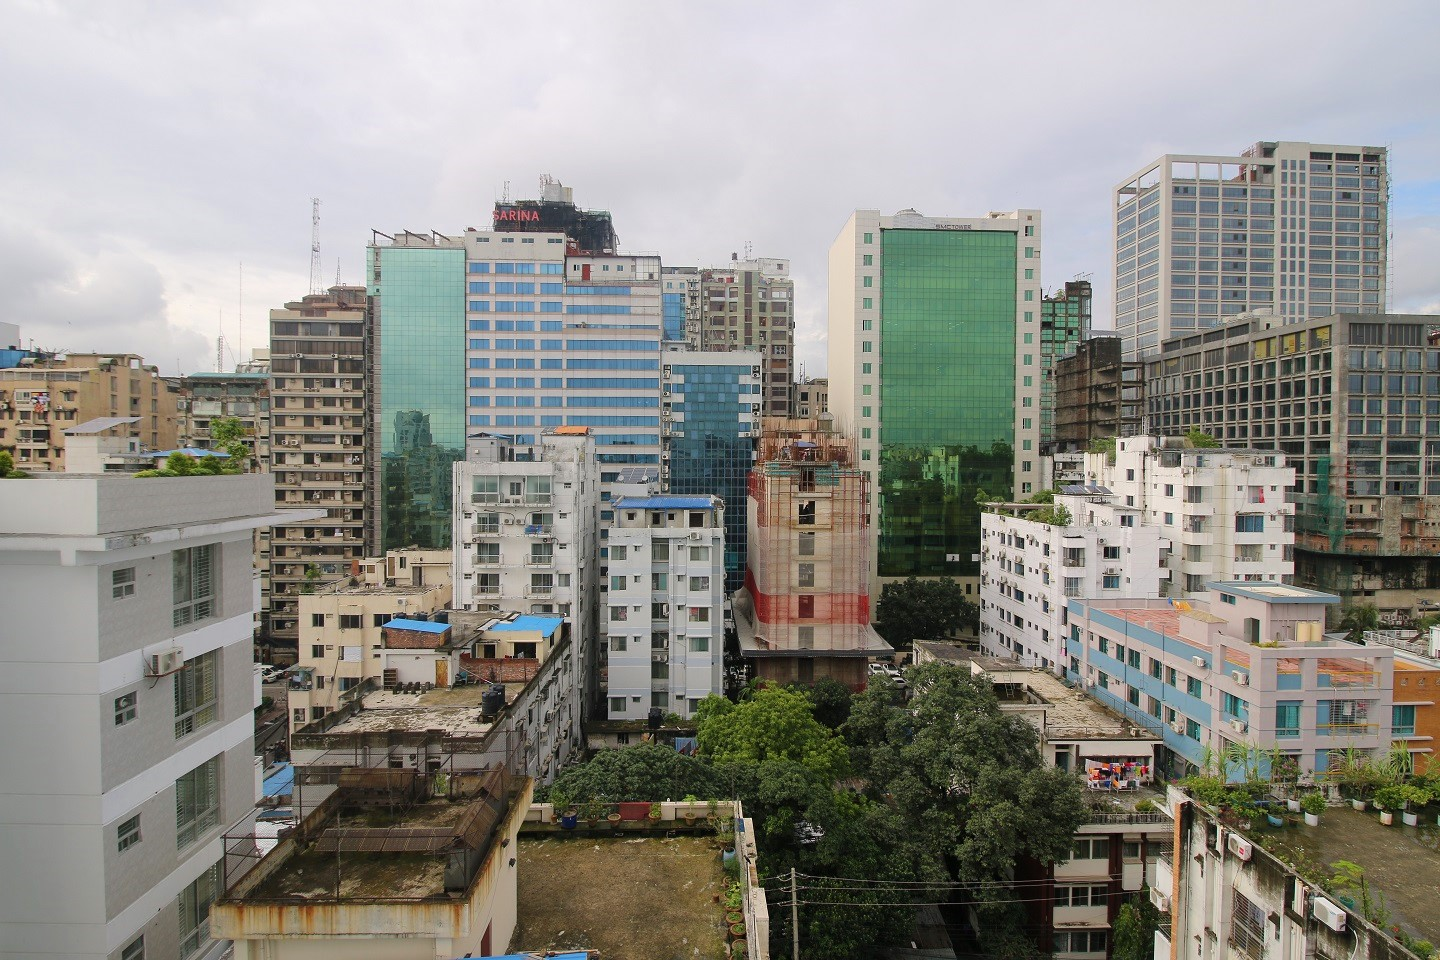 Bangladesh has a good urban development rate, which is a good indicator of the property market